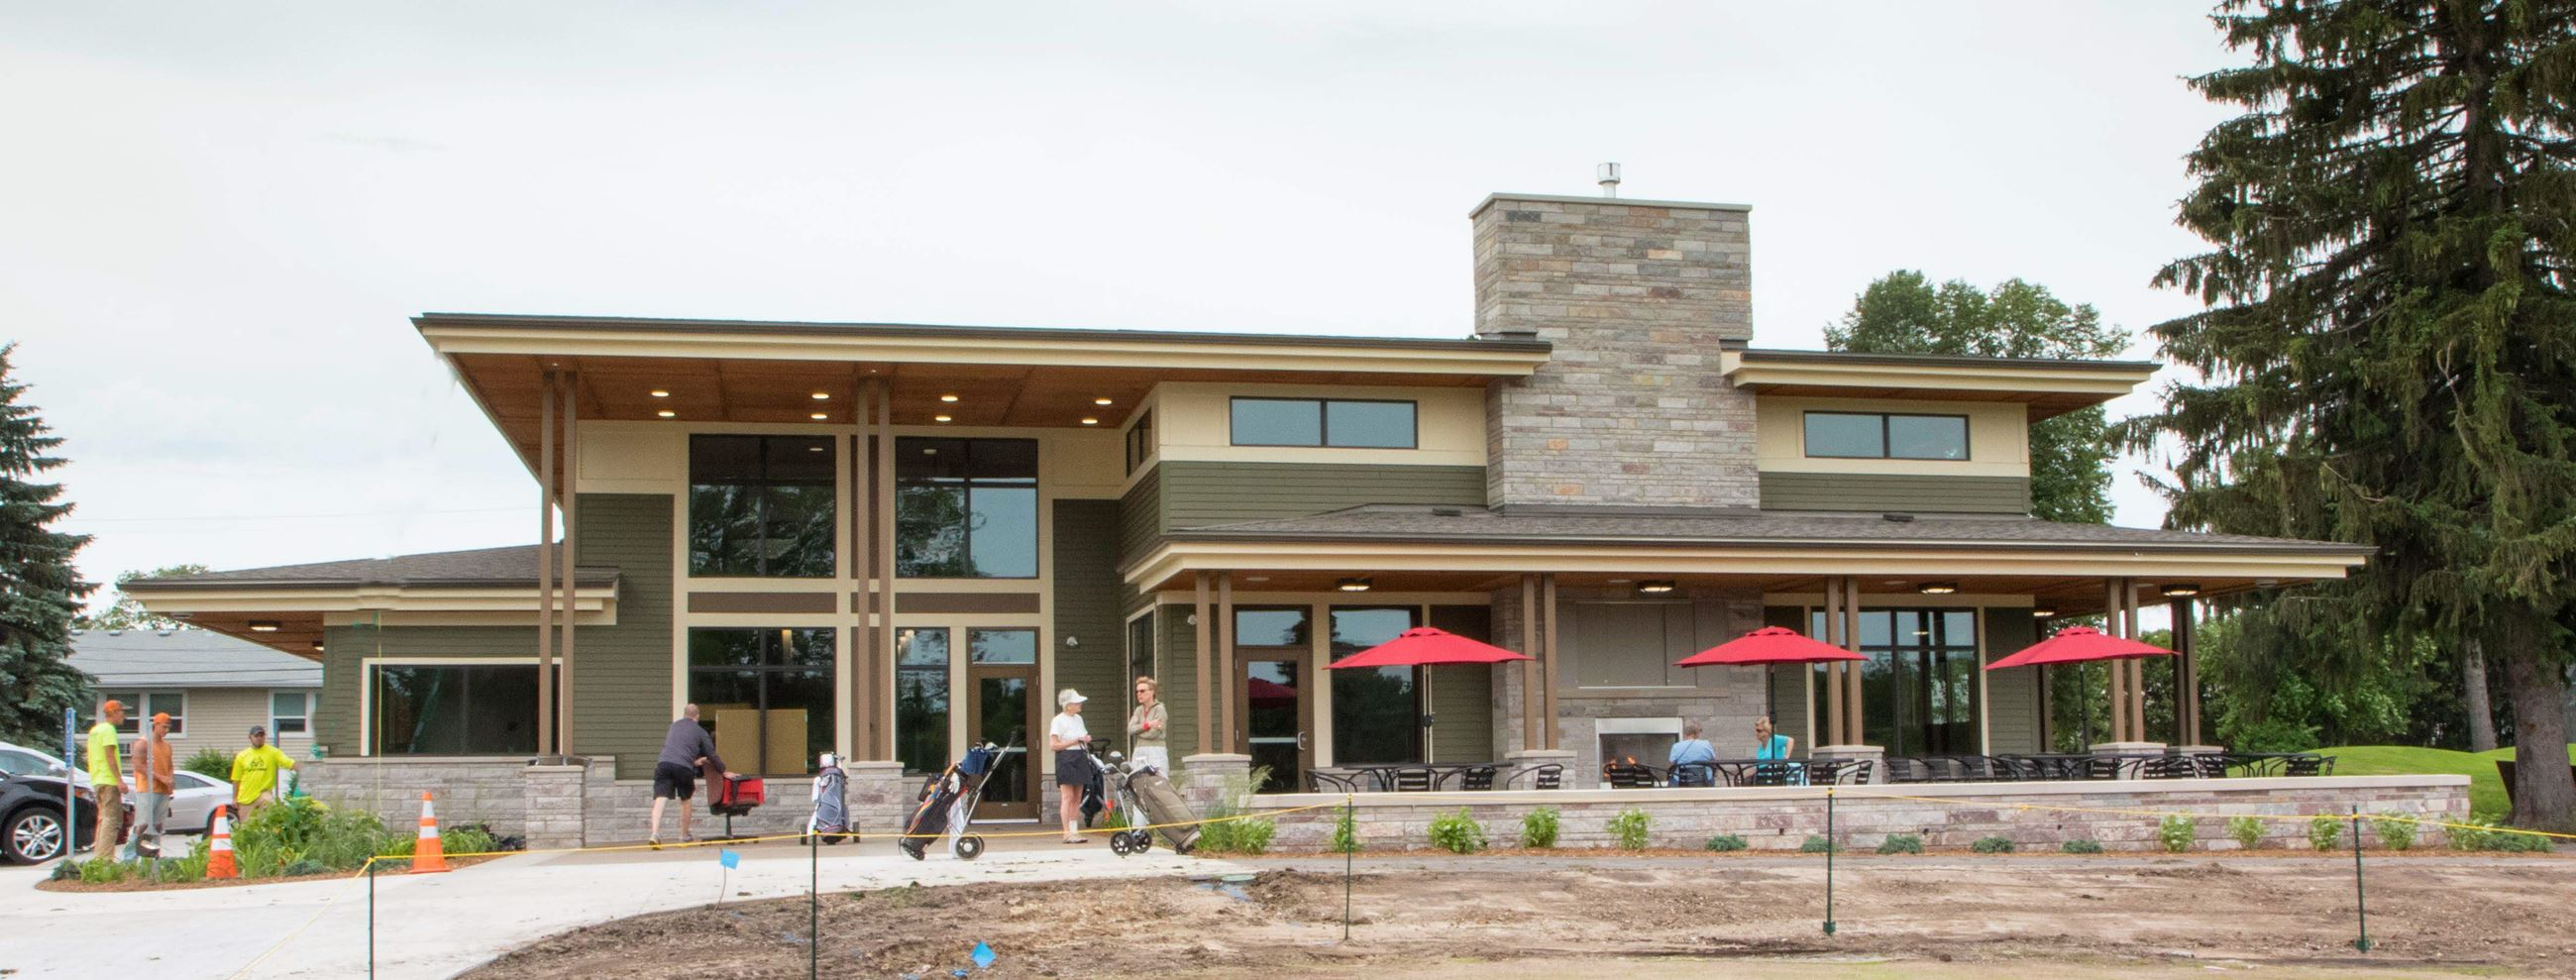 Cedarholm Golf Course Community Building